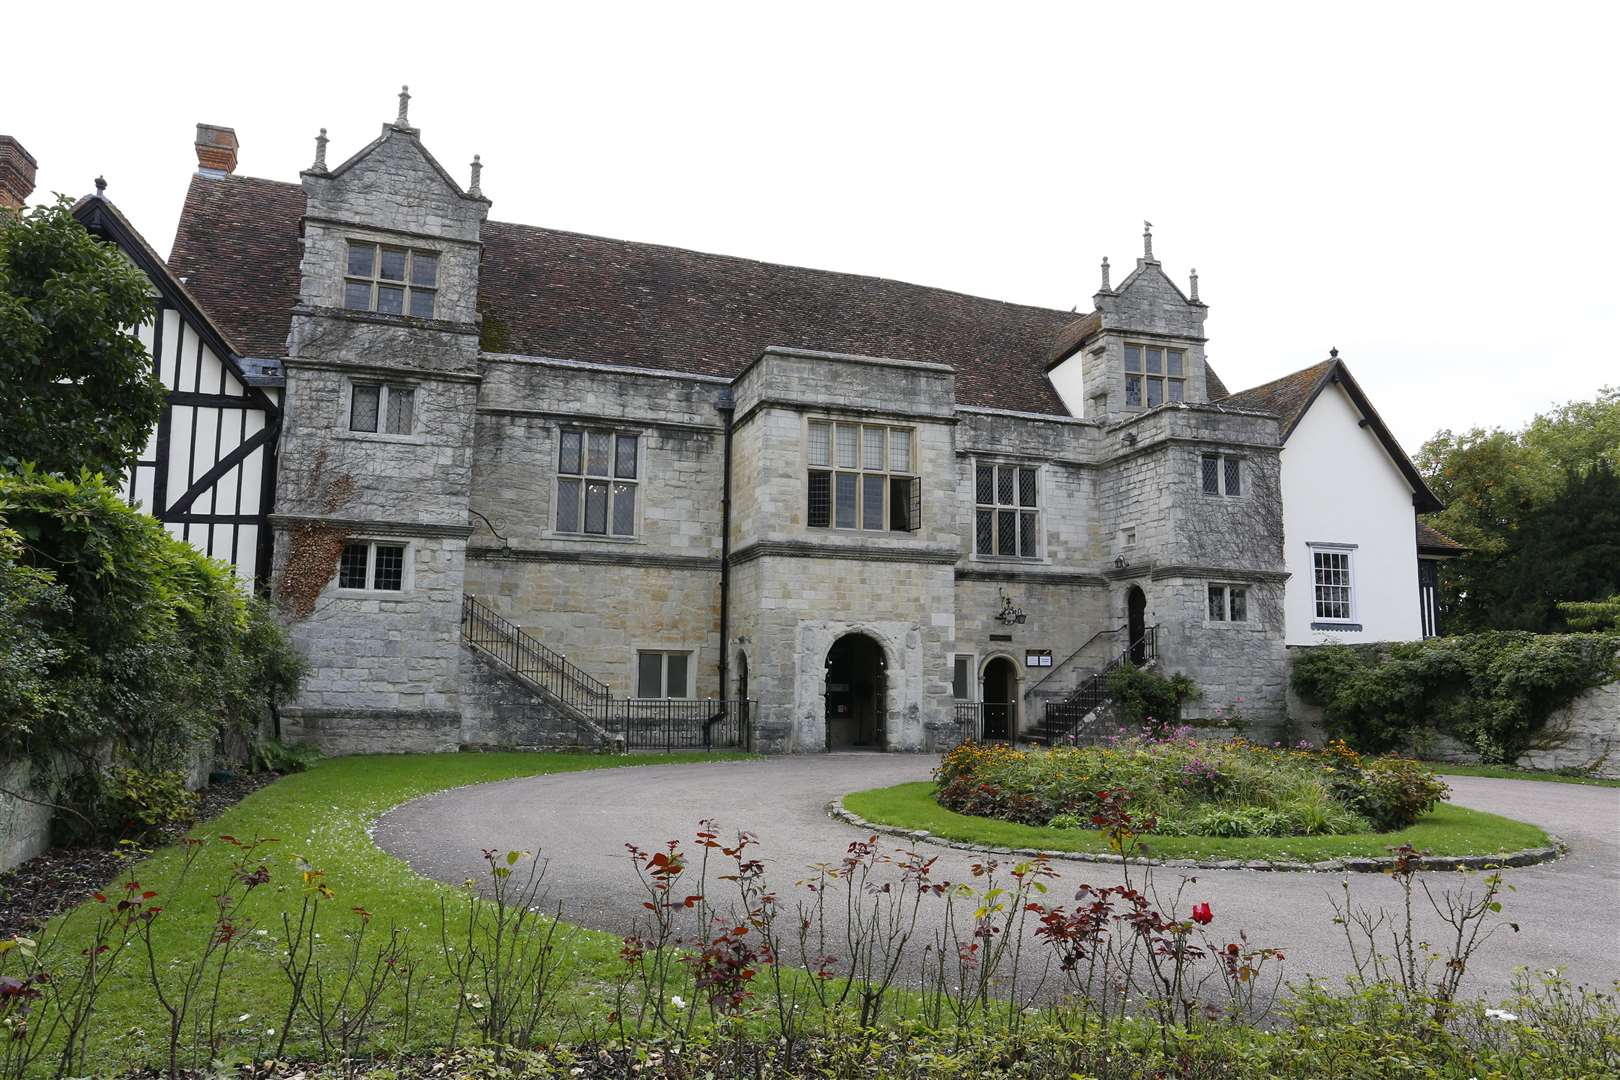 The inquest was heard at Archbishop's Palace in Maidstone